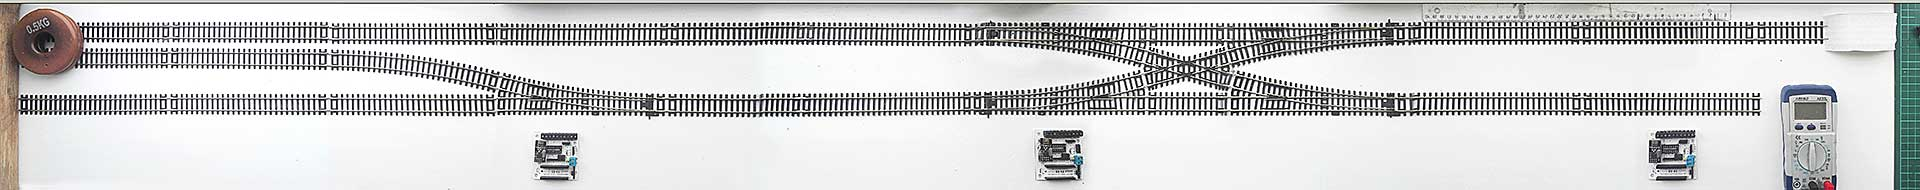 Track-plan for Wireless Railway Unit